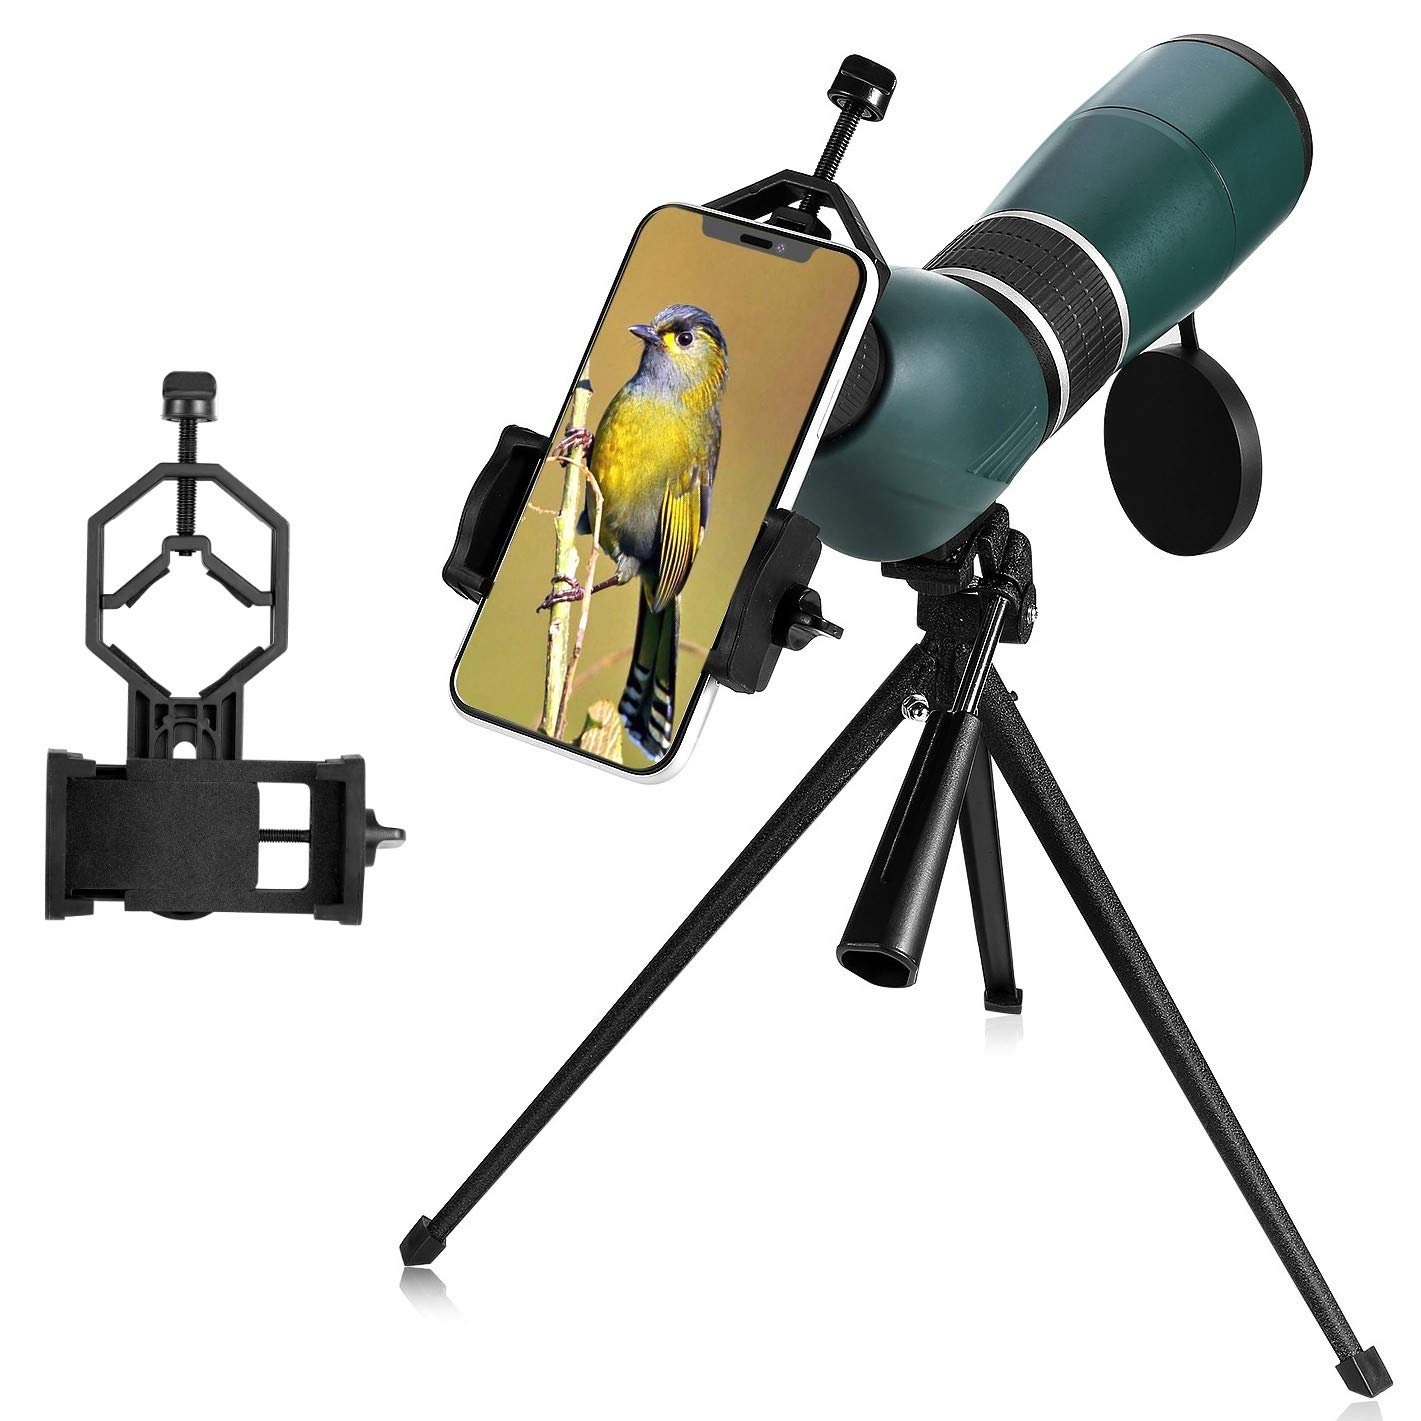 MaxUSee 20-60×60 Zoom HD Spotting Scope with Tripod, Carrying Bag and Phone Adapter, BAK4 Prism Full Multi-Coated Lens for Target Shooting Hunting Bird Watching Wildlife Scenery Moon Viewing